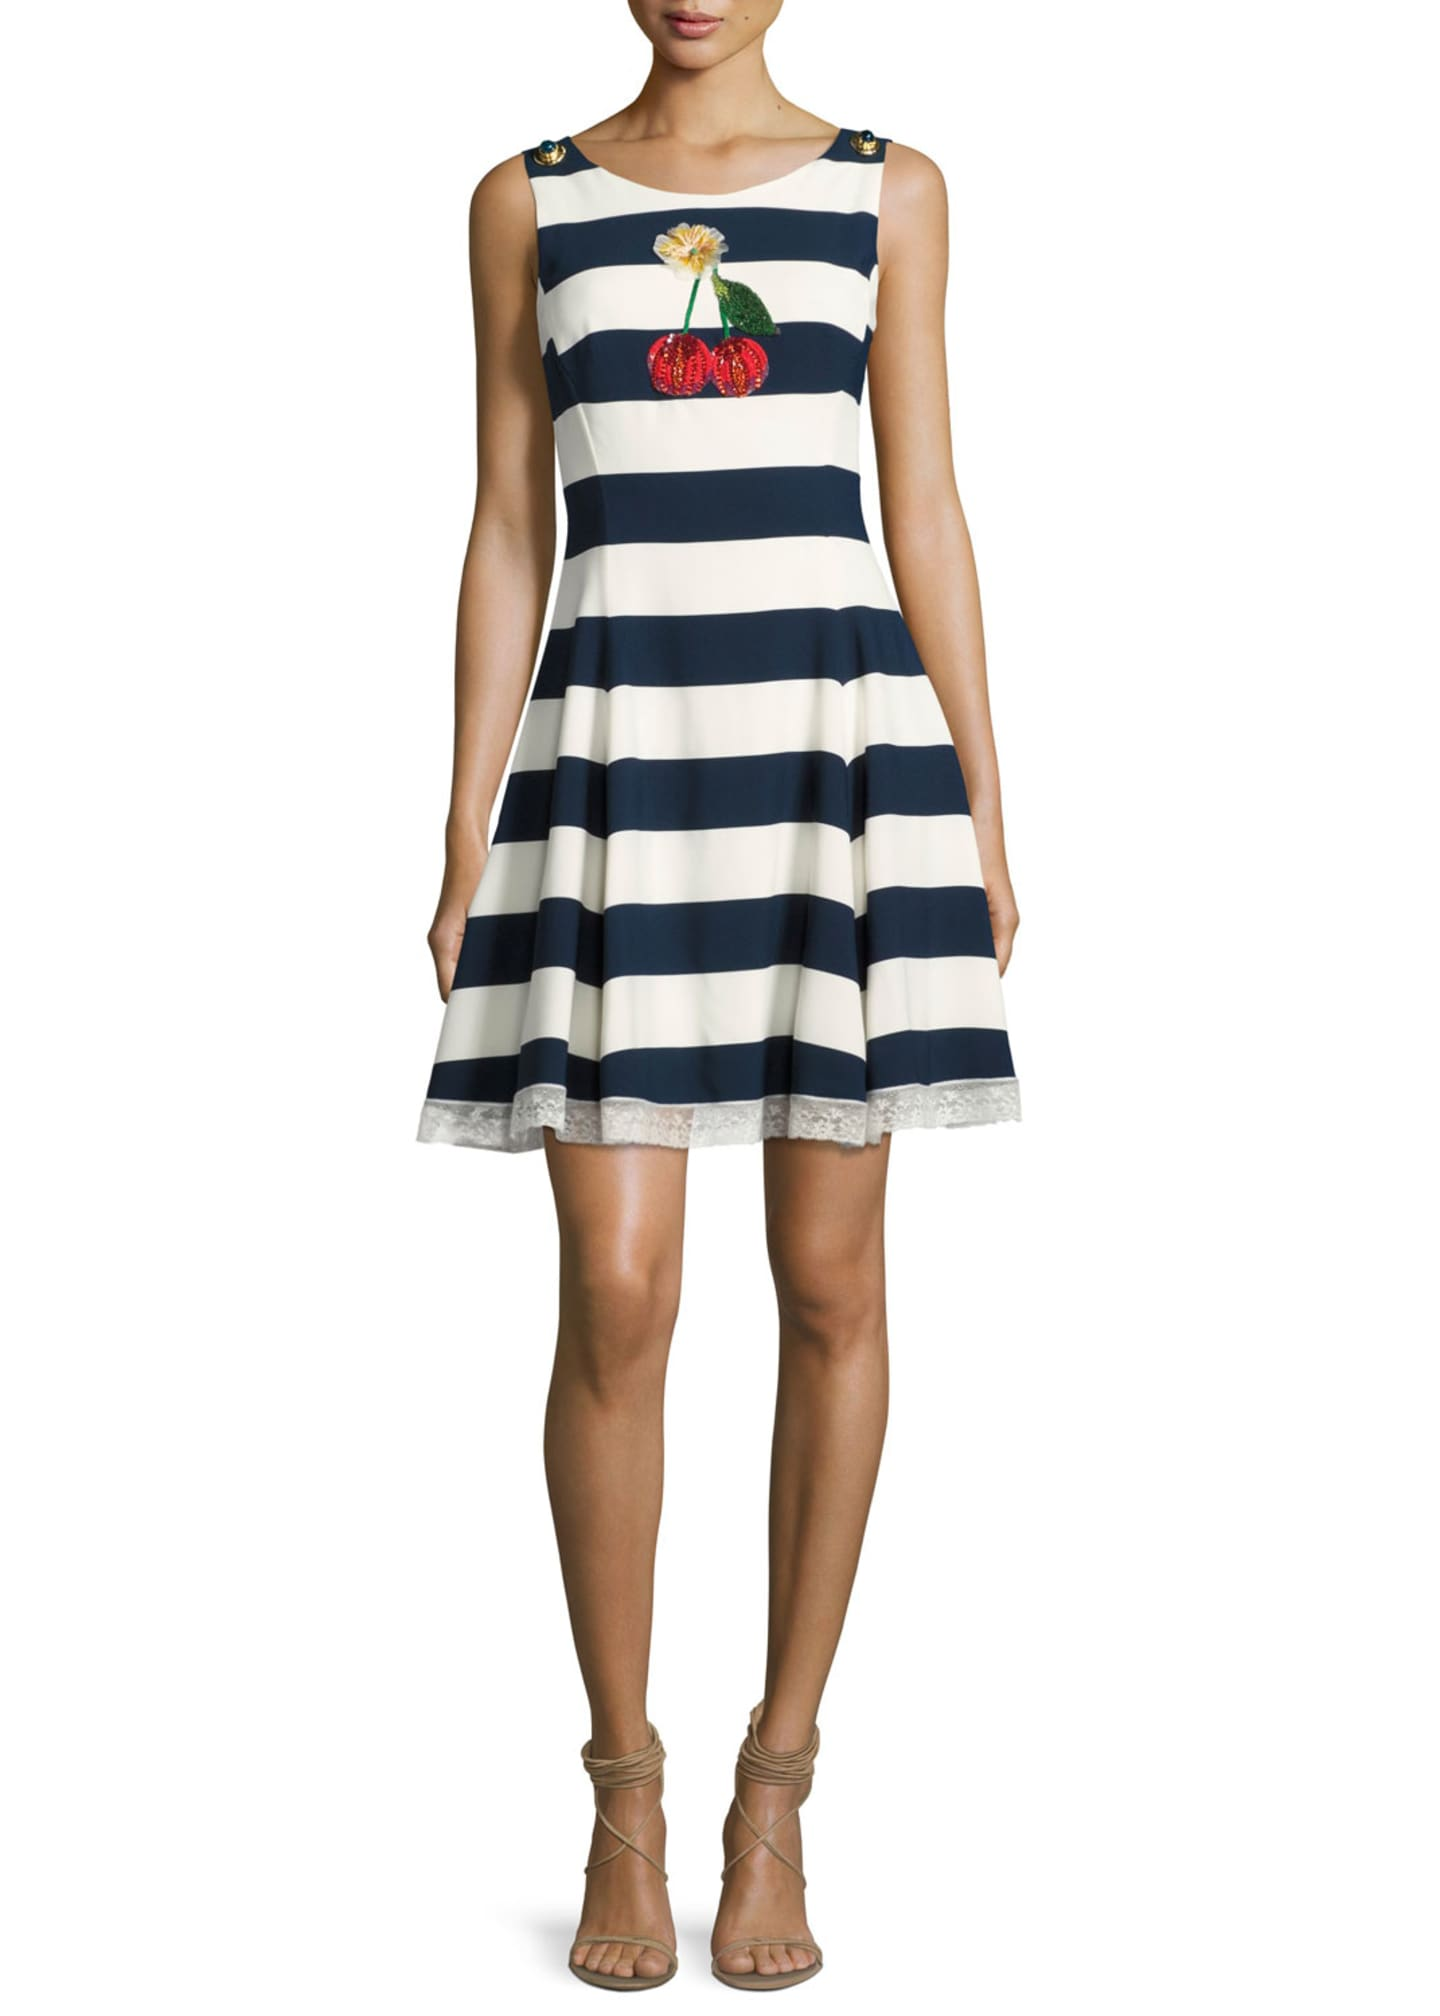 Dolce & Gabbana Cherry-Embroidered Striped A-Line Dress,